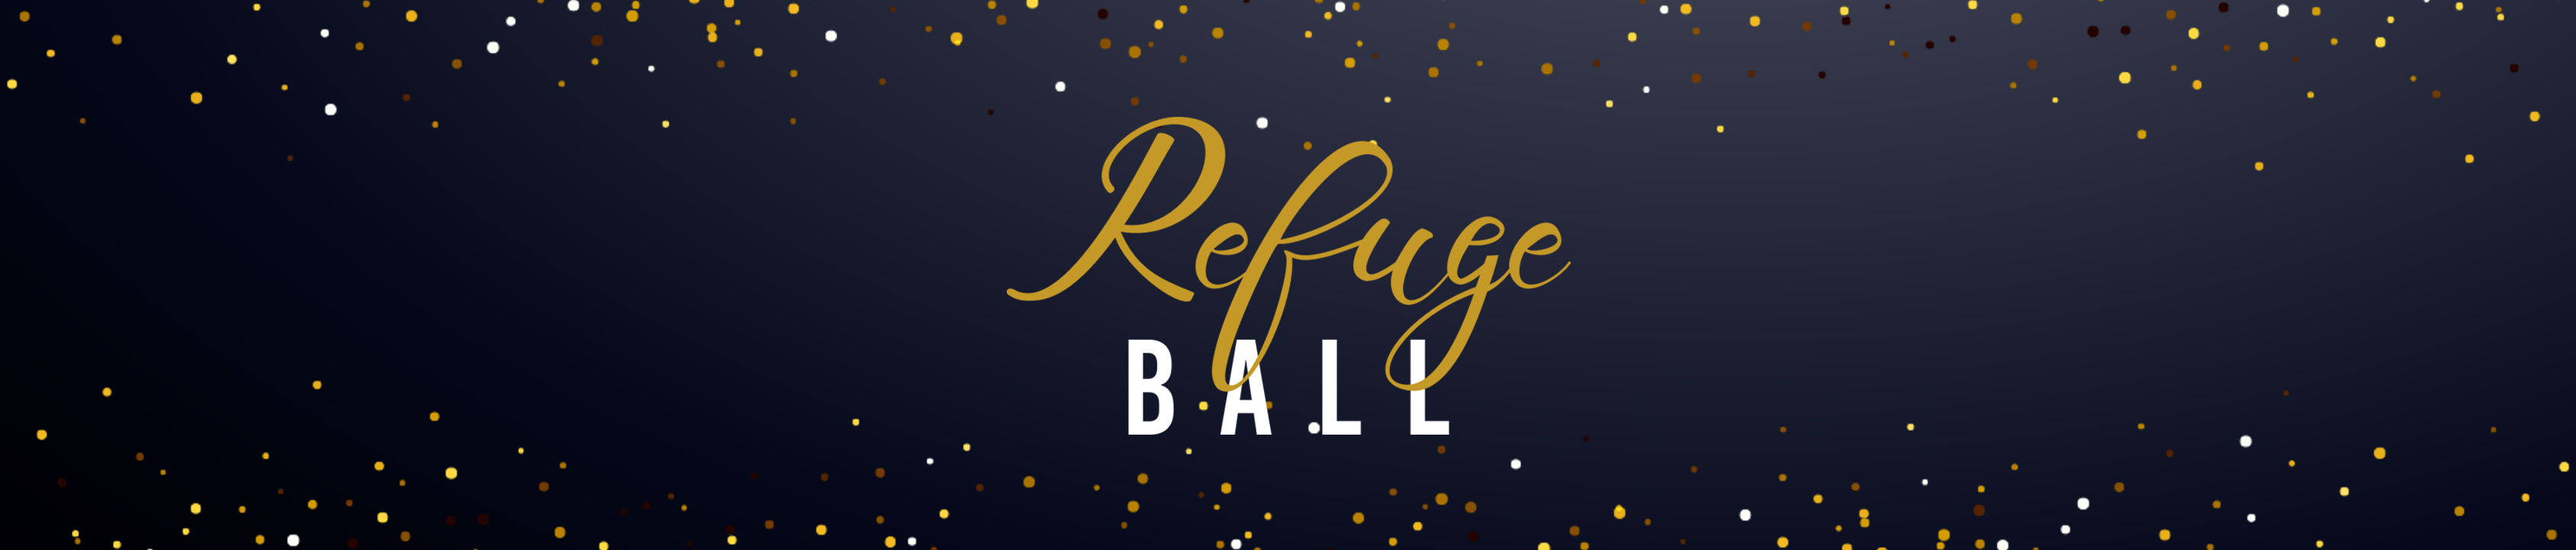 Refuge Ball - 2018 logo